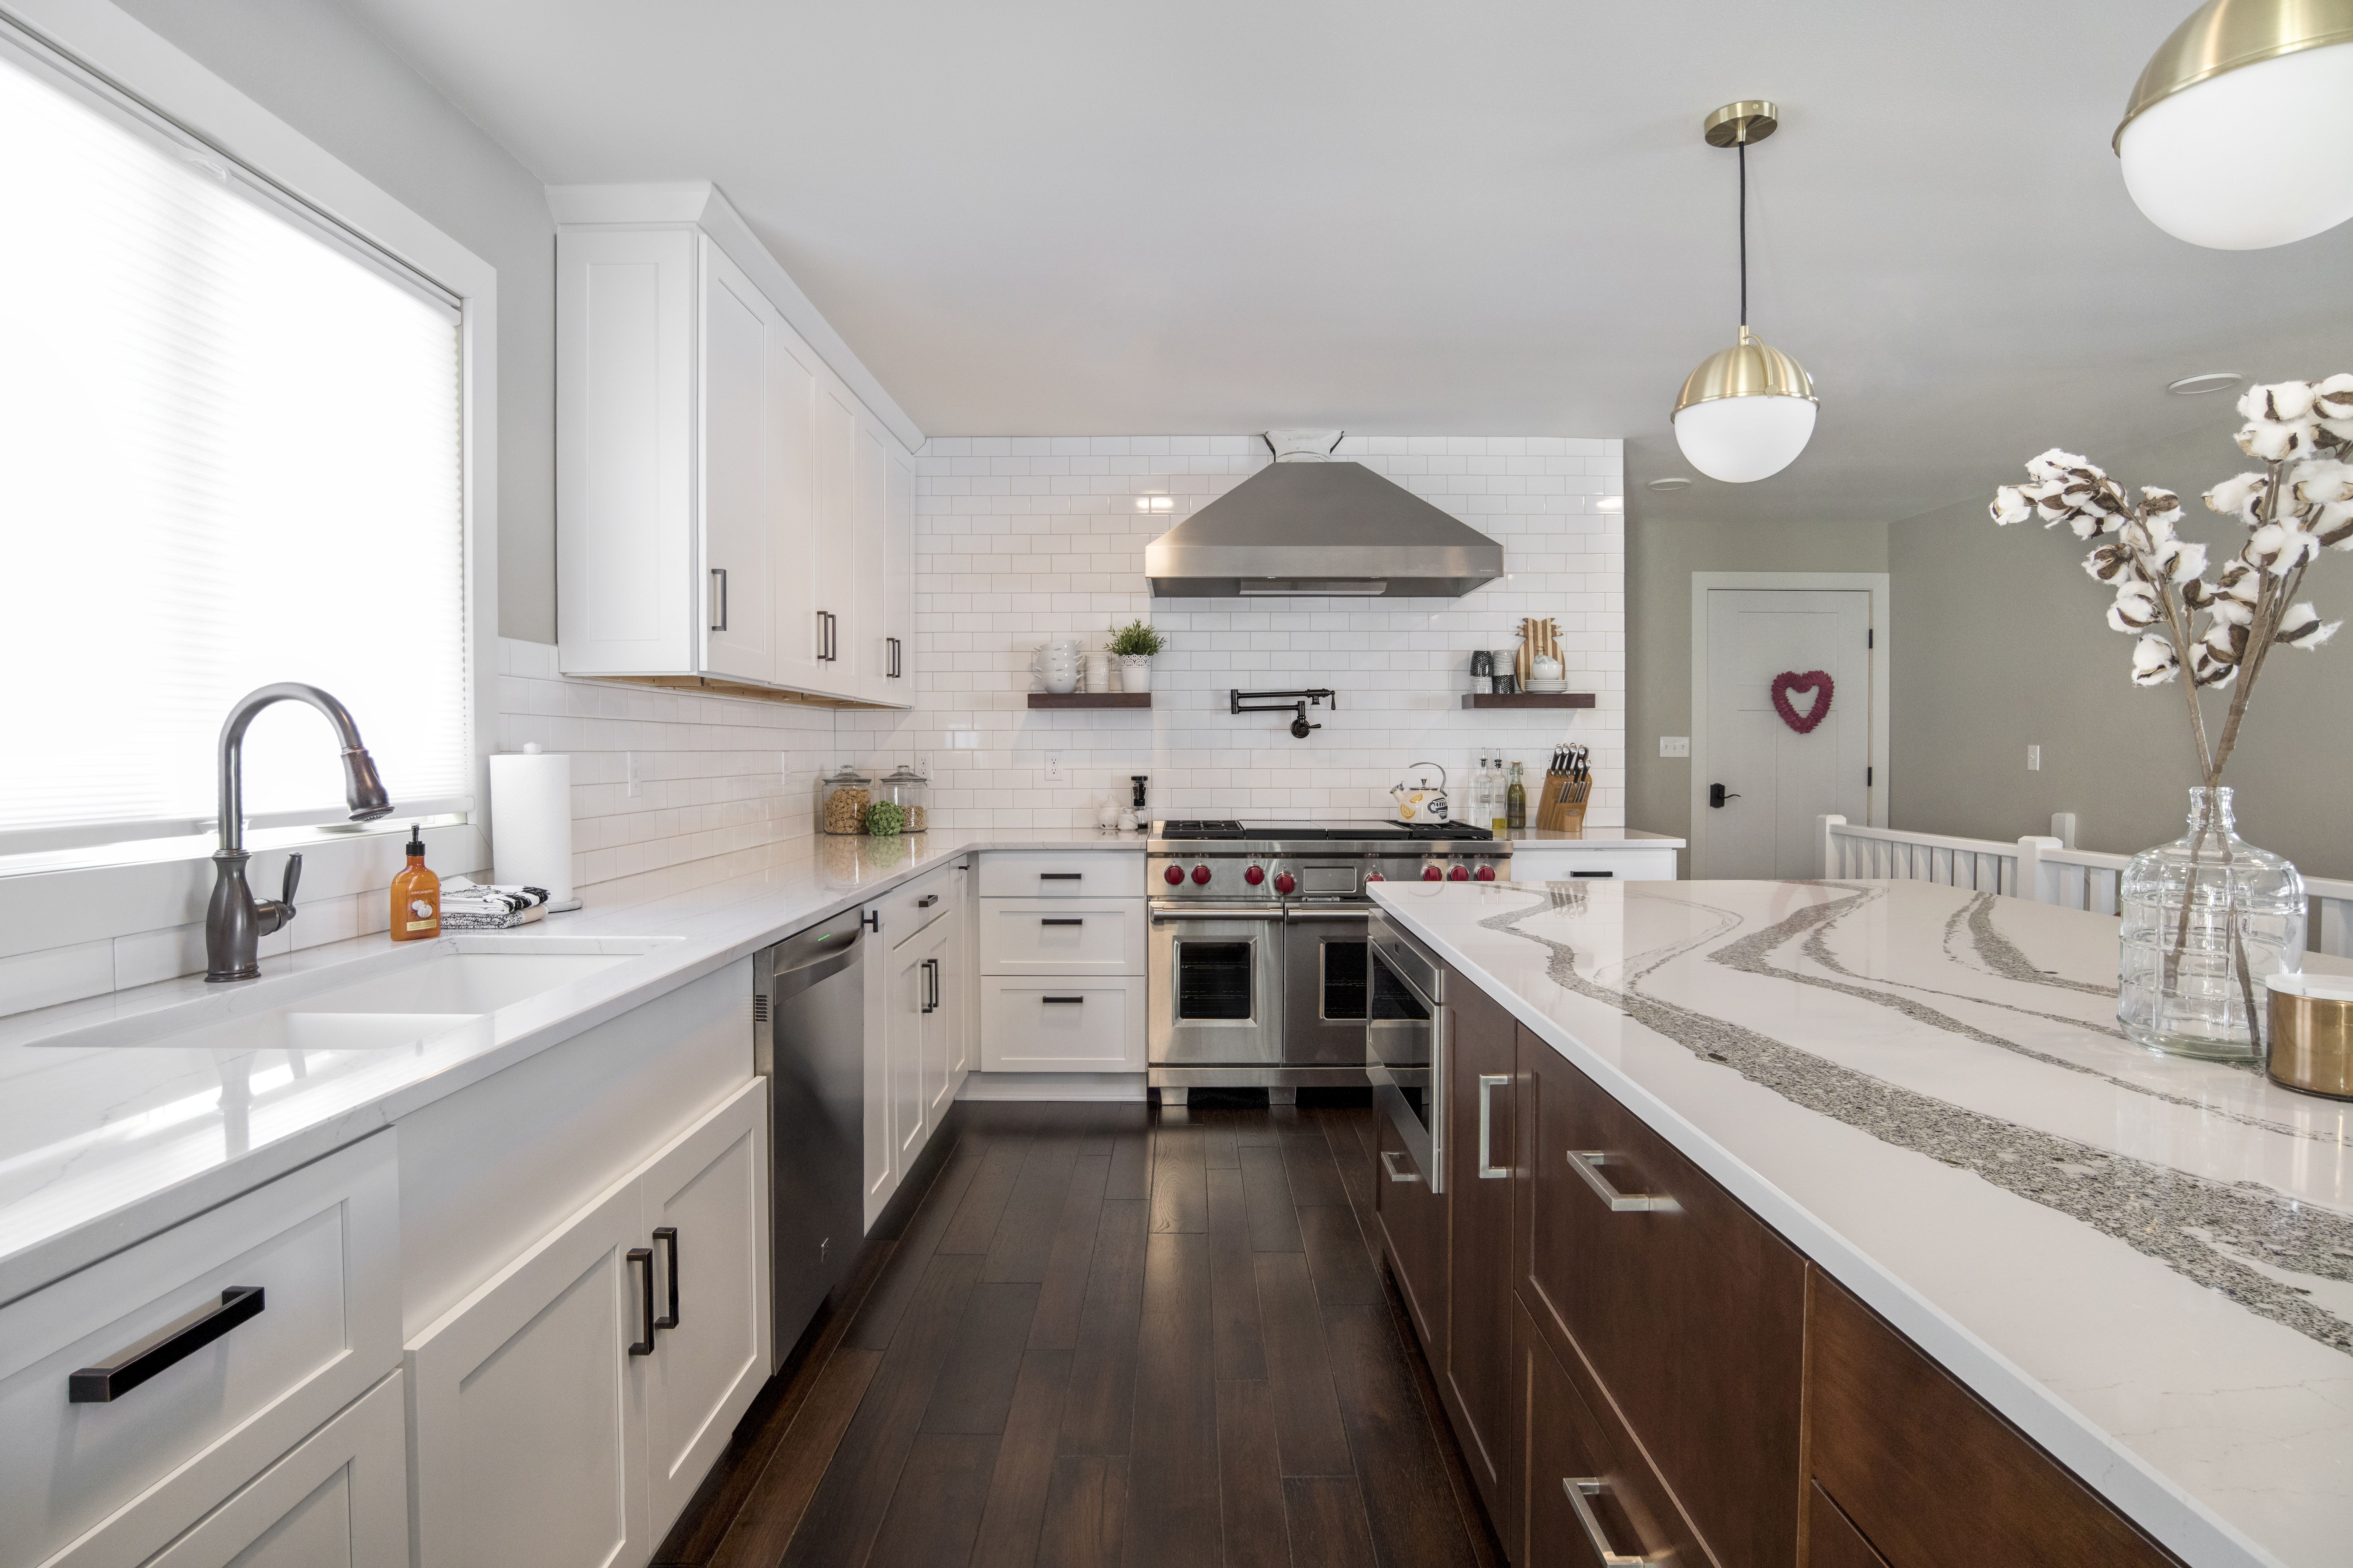 Take A Gander At These Gorgeous Cambria Quartz Countertops We